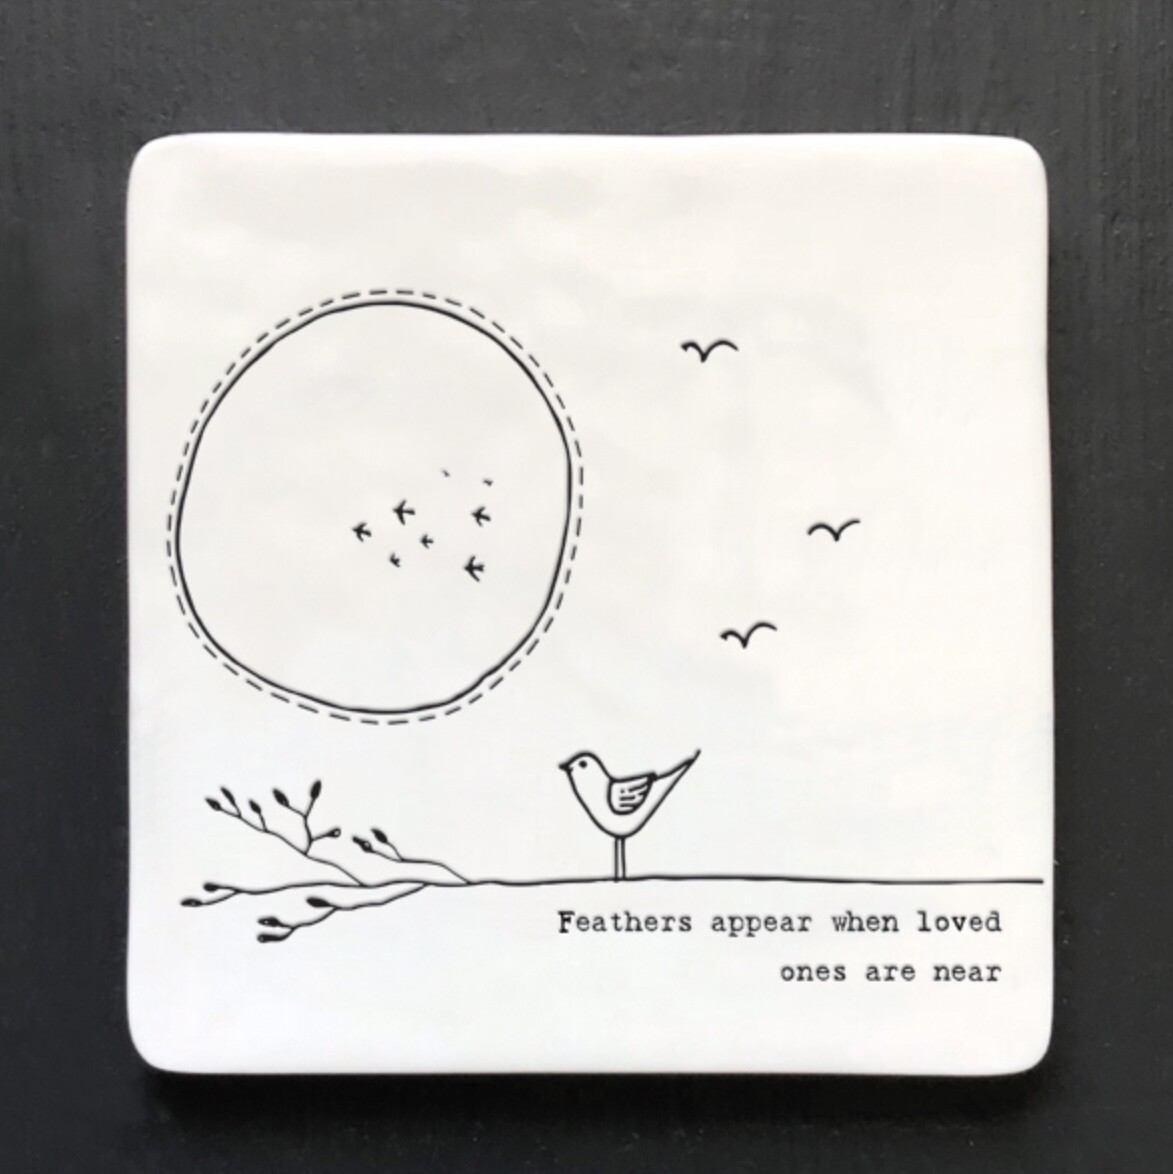 East of India Ceramic Coaster - Feathers Appear When Loved Ones Are Near